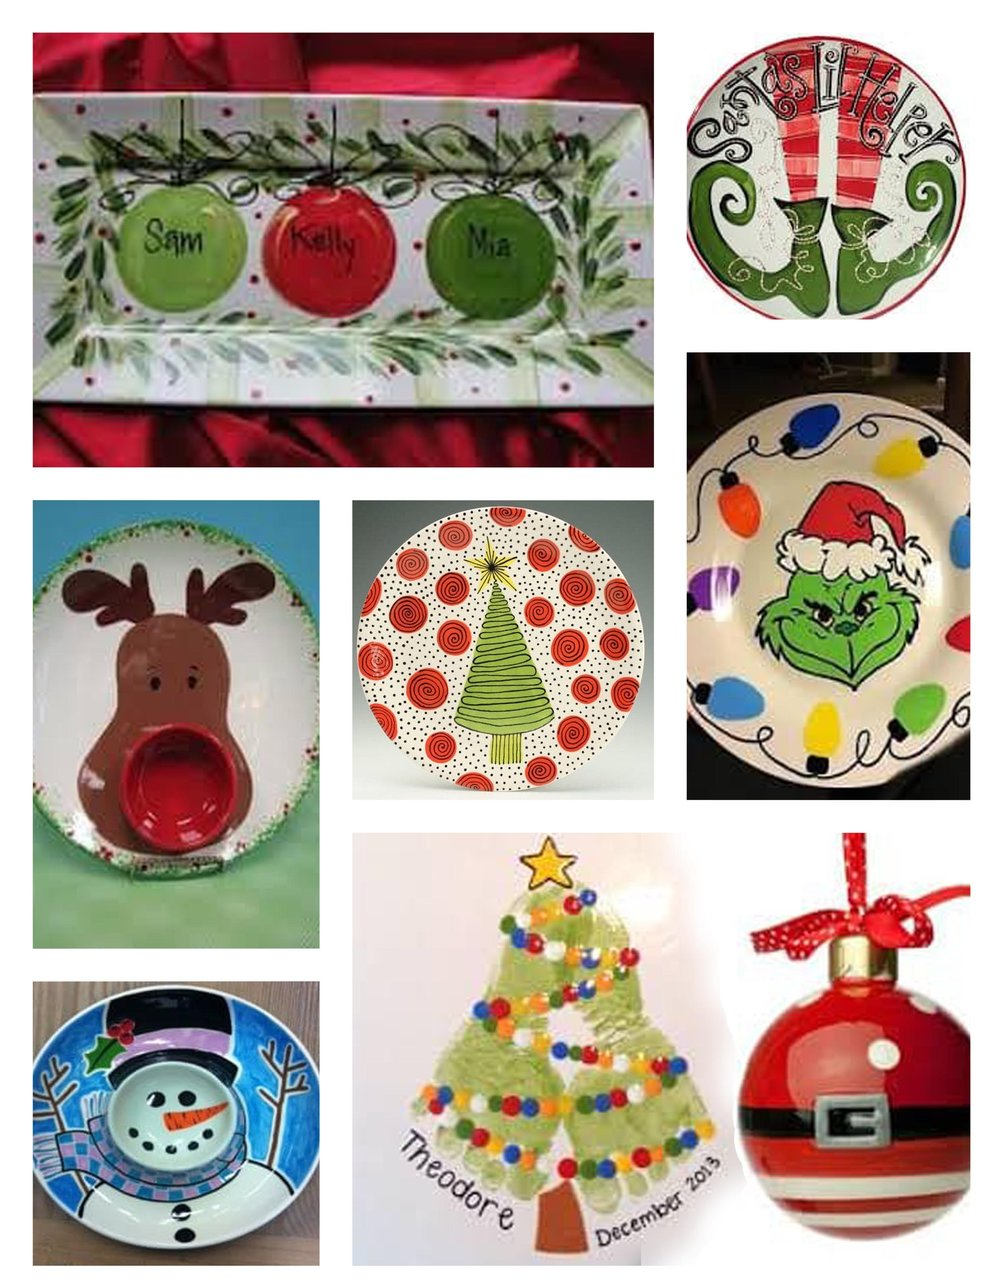 Christmas Pottery Collage.jpg